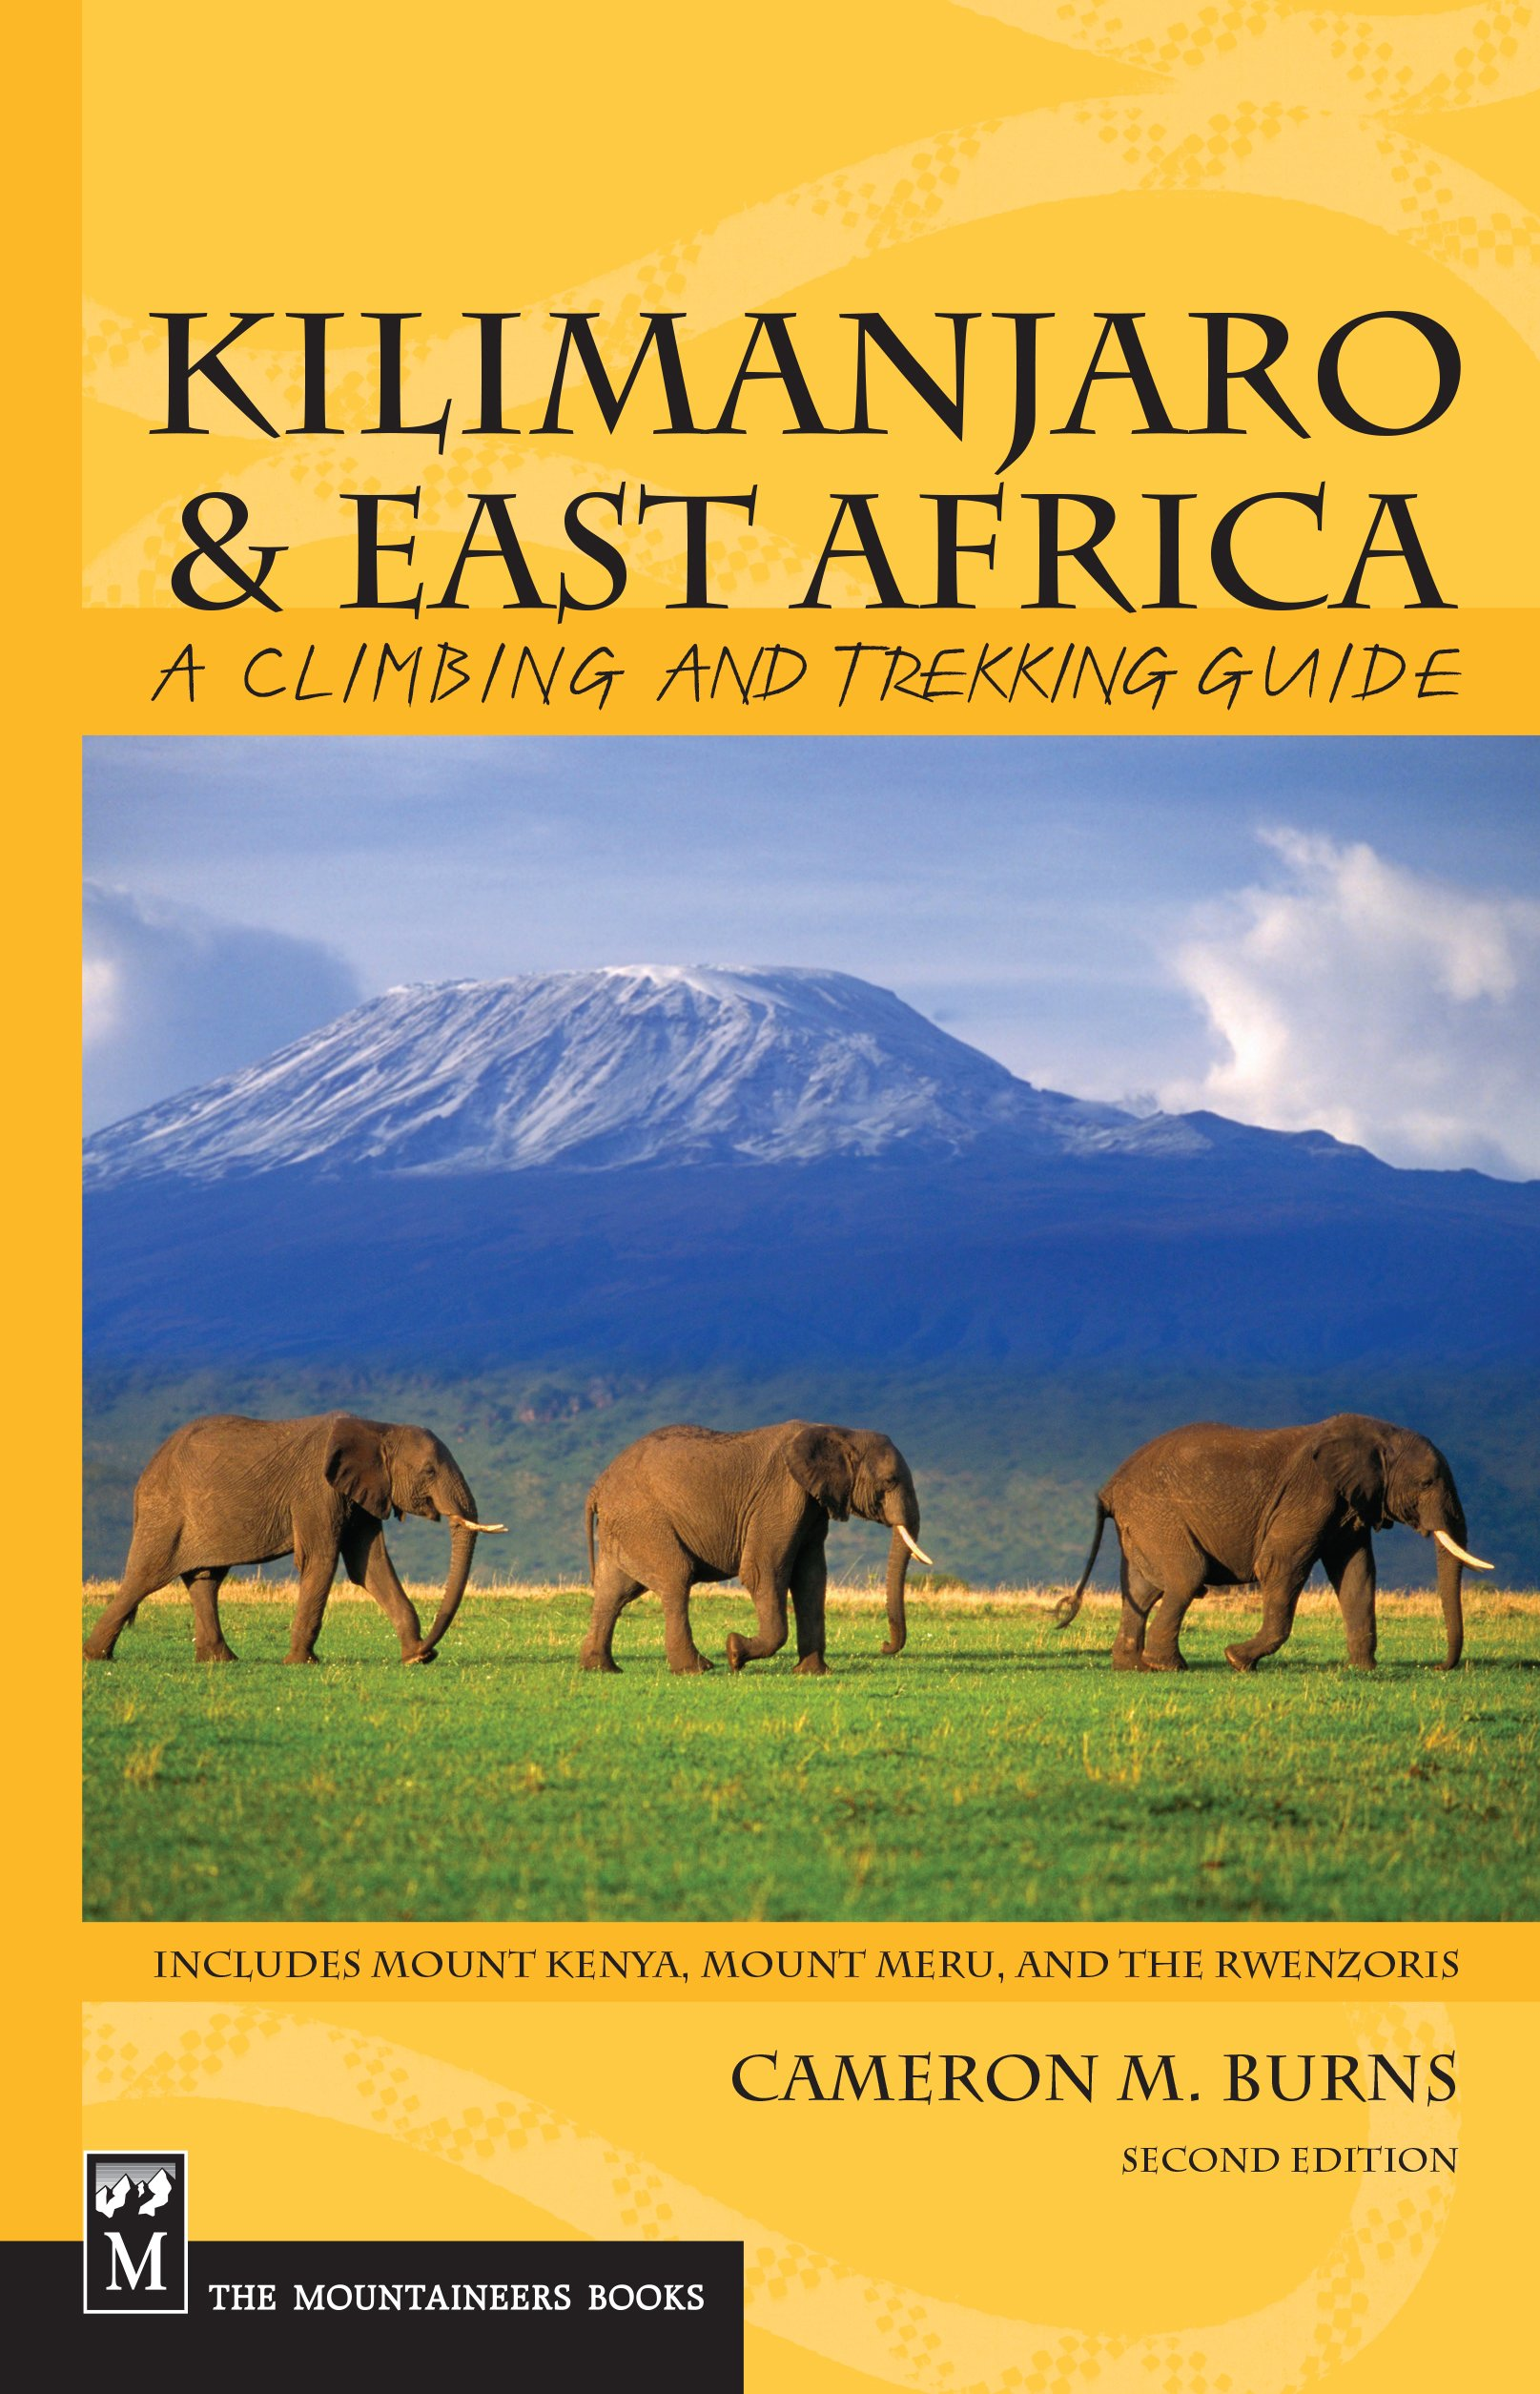 Kilimanjaro & East Africa: A Climbing and Trekking Guide pdf epub